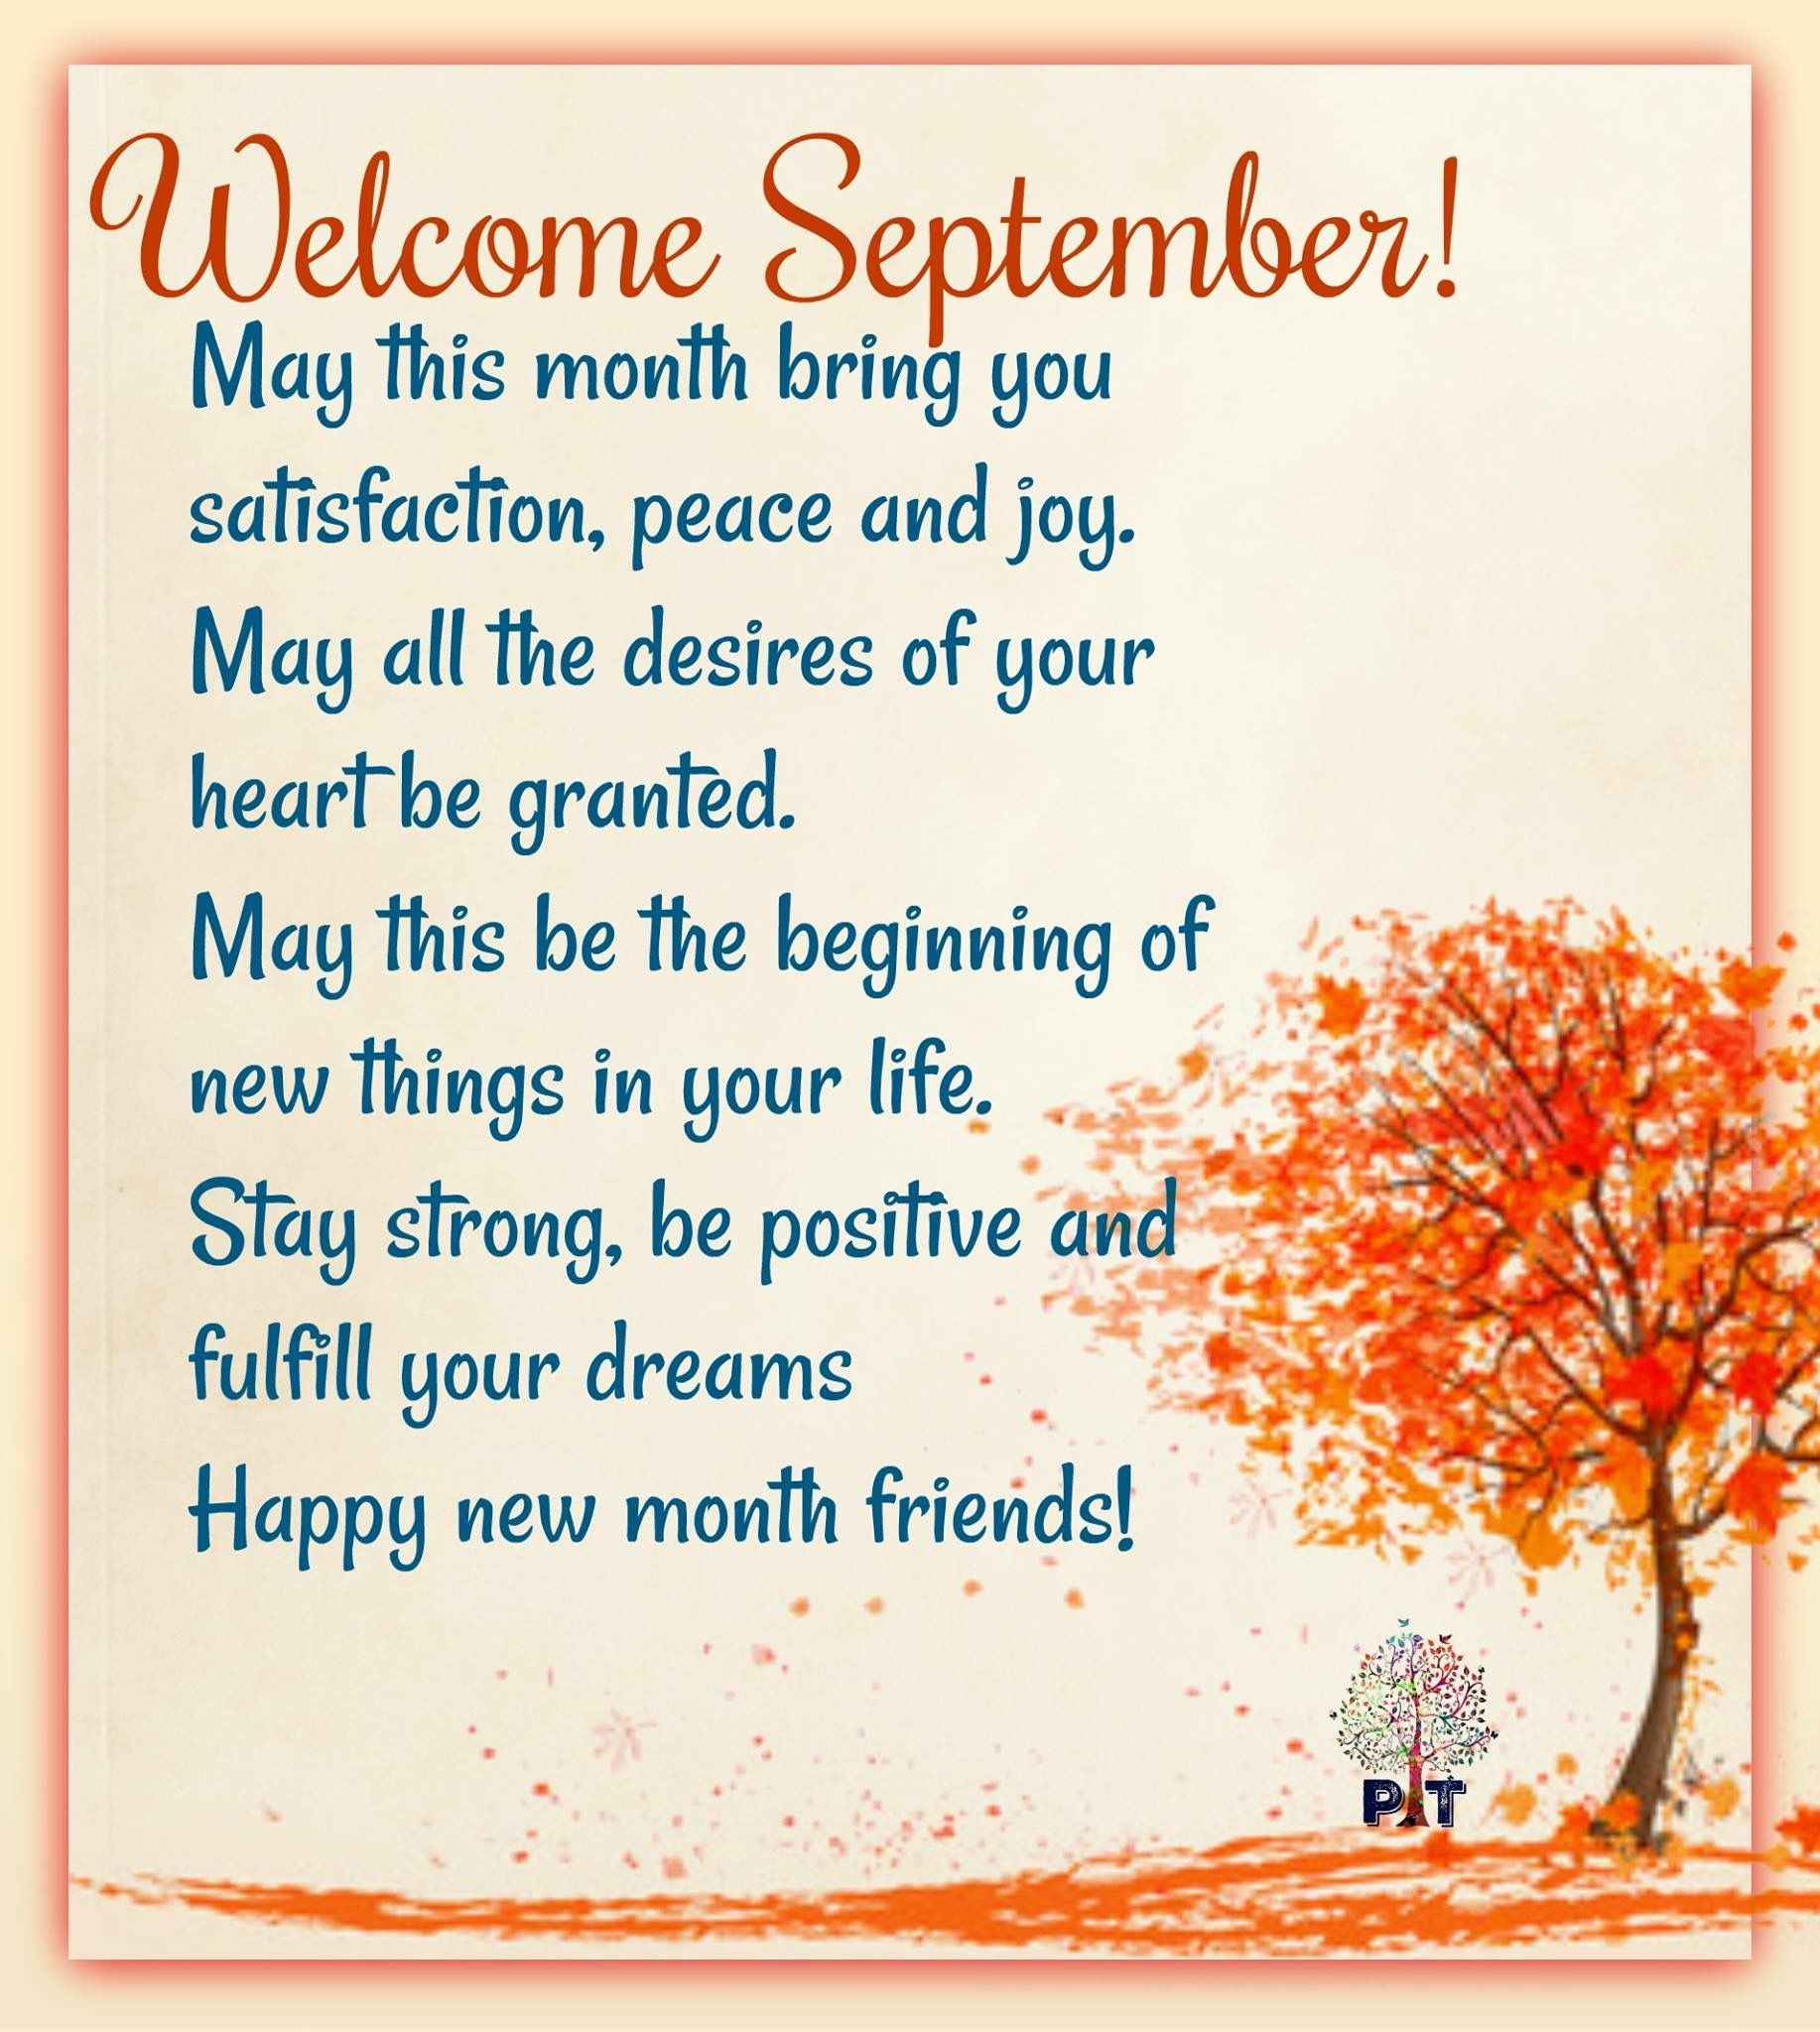 Pin by Beauty by Beverly on Daily Motivation, Gratitude & Love Quotes | Welcome september, September quotes, New month quotes